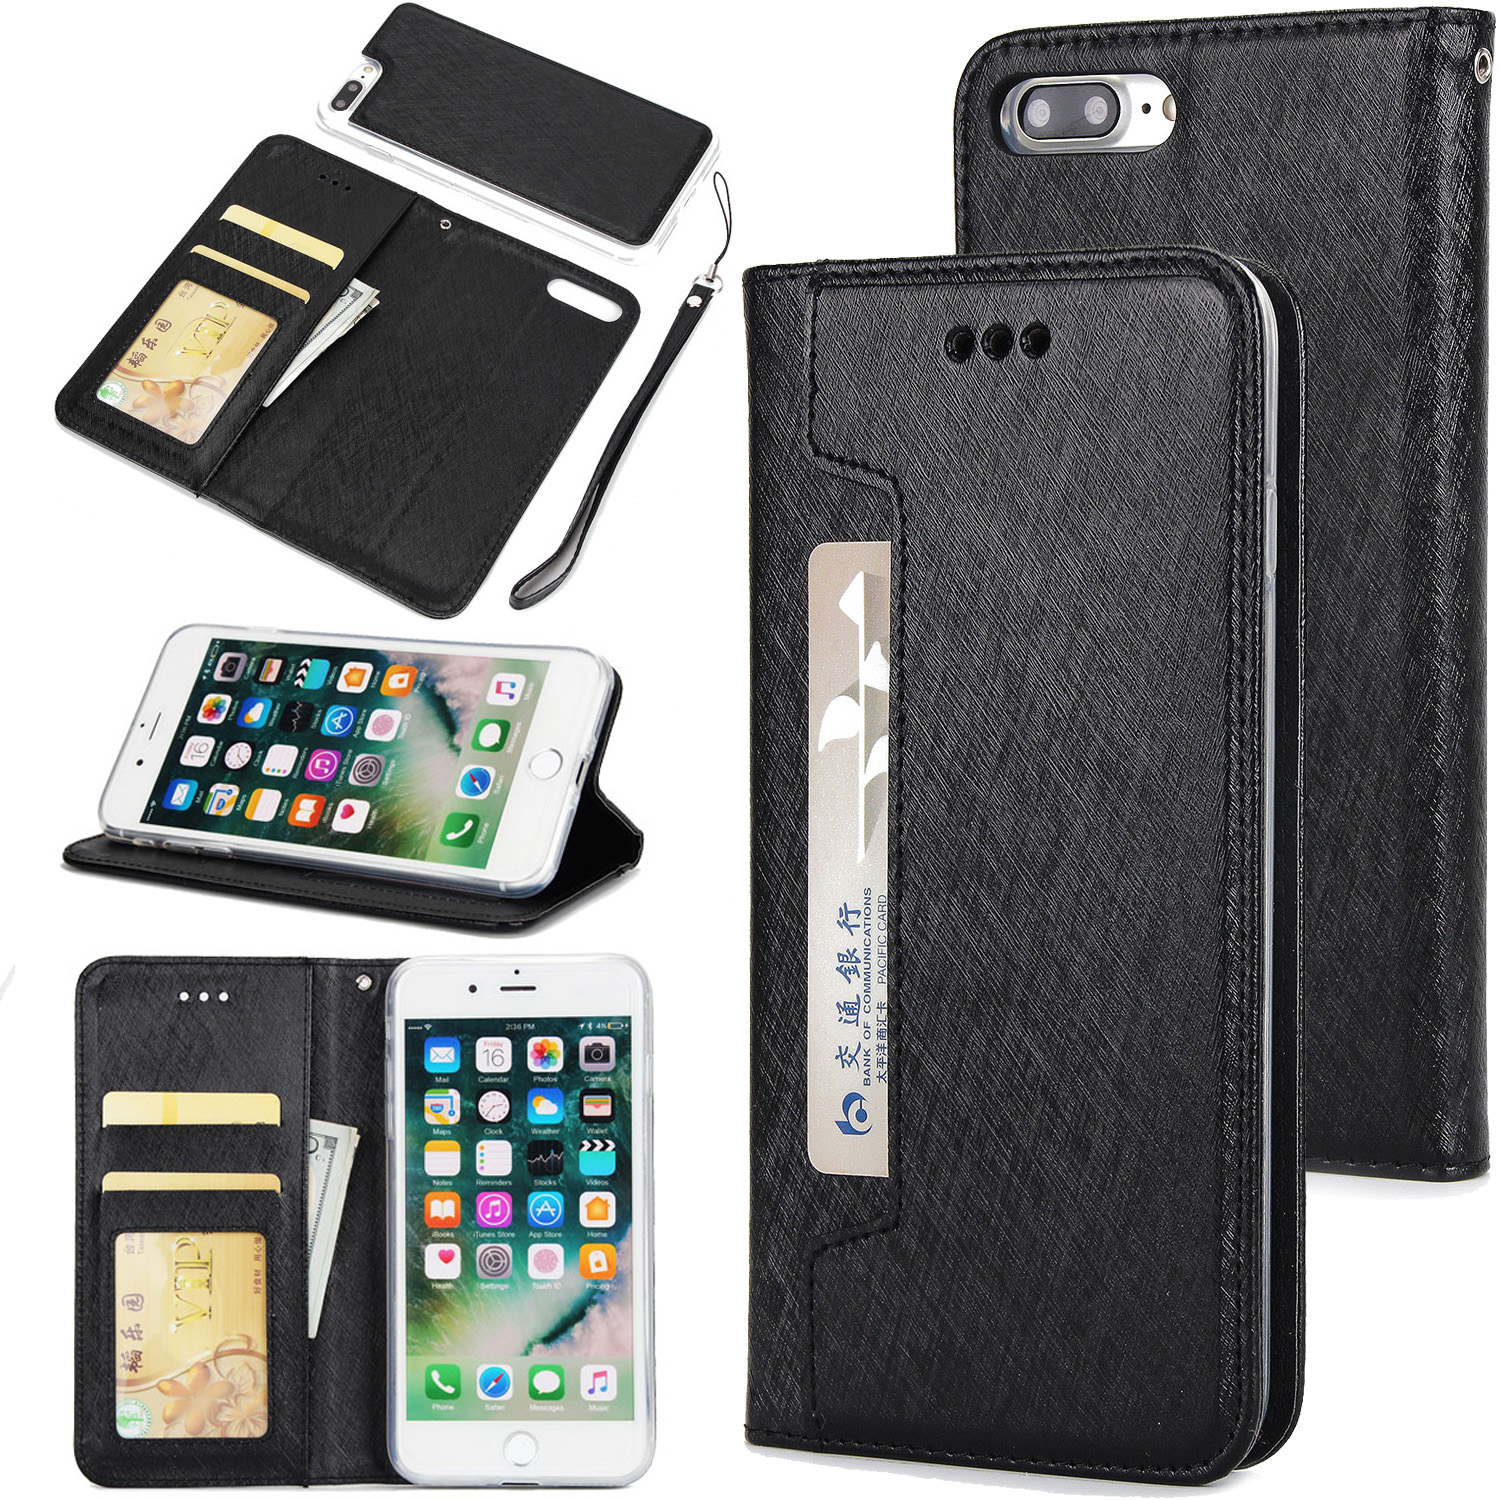 Luxury card iphone app musubo luxury mobile phone case for iphone 8 best business card organizer app for iphone new magnificent google business card app s business card reheart Images